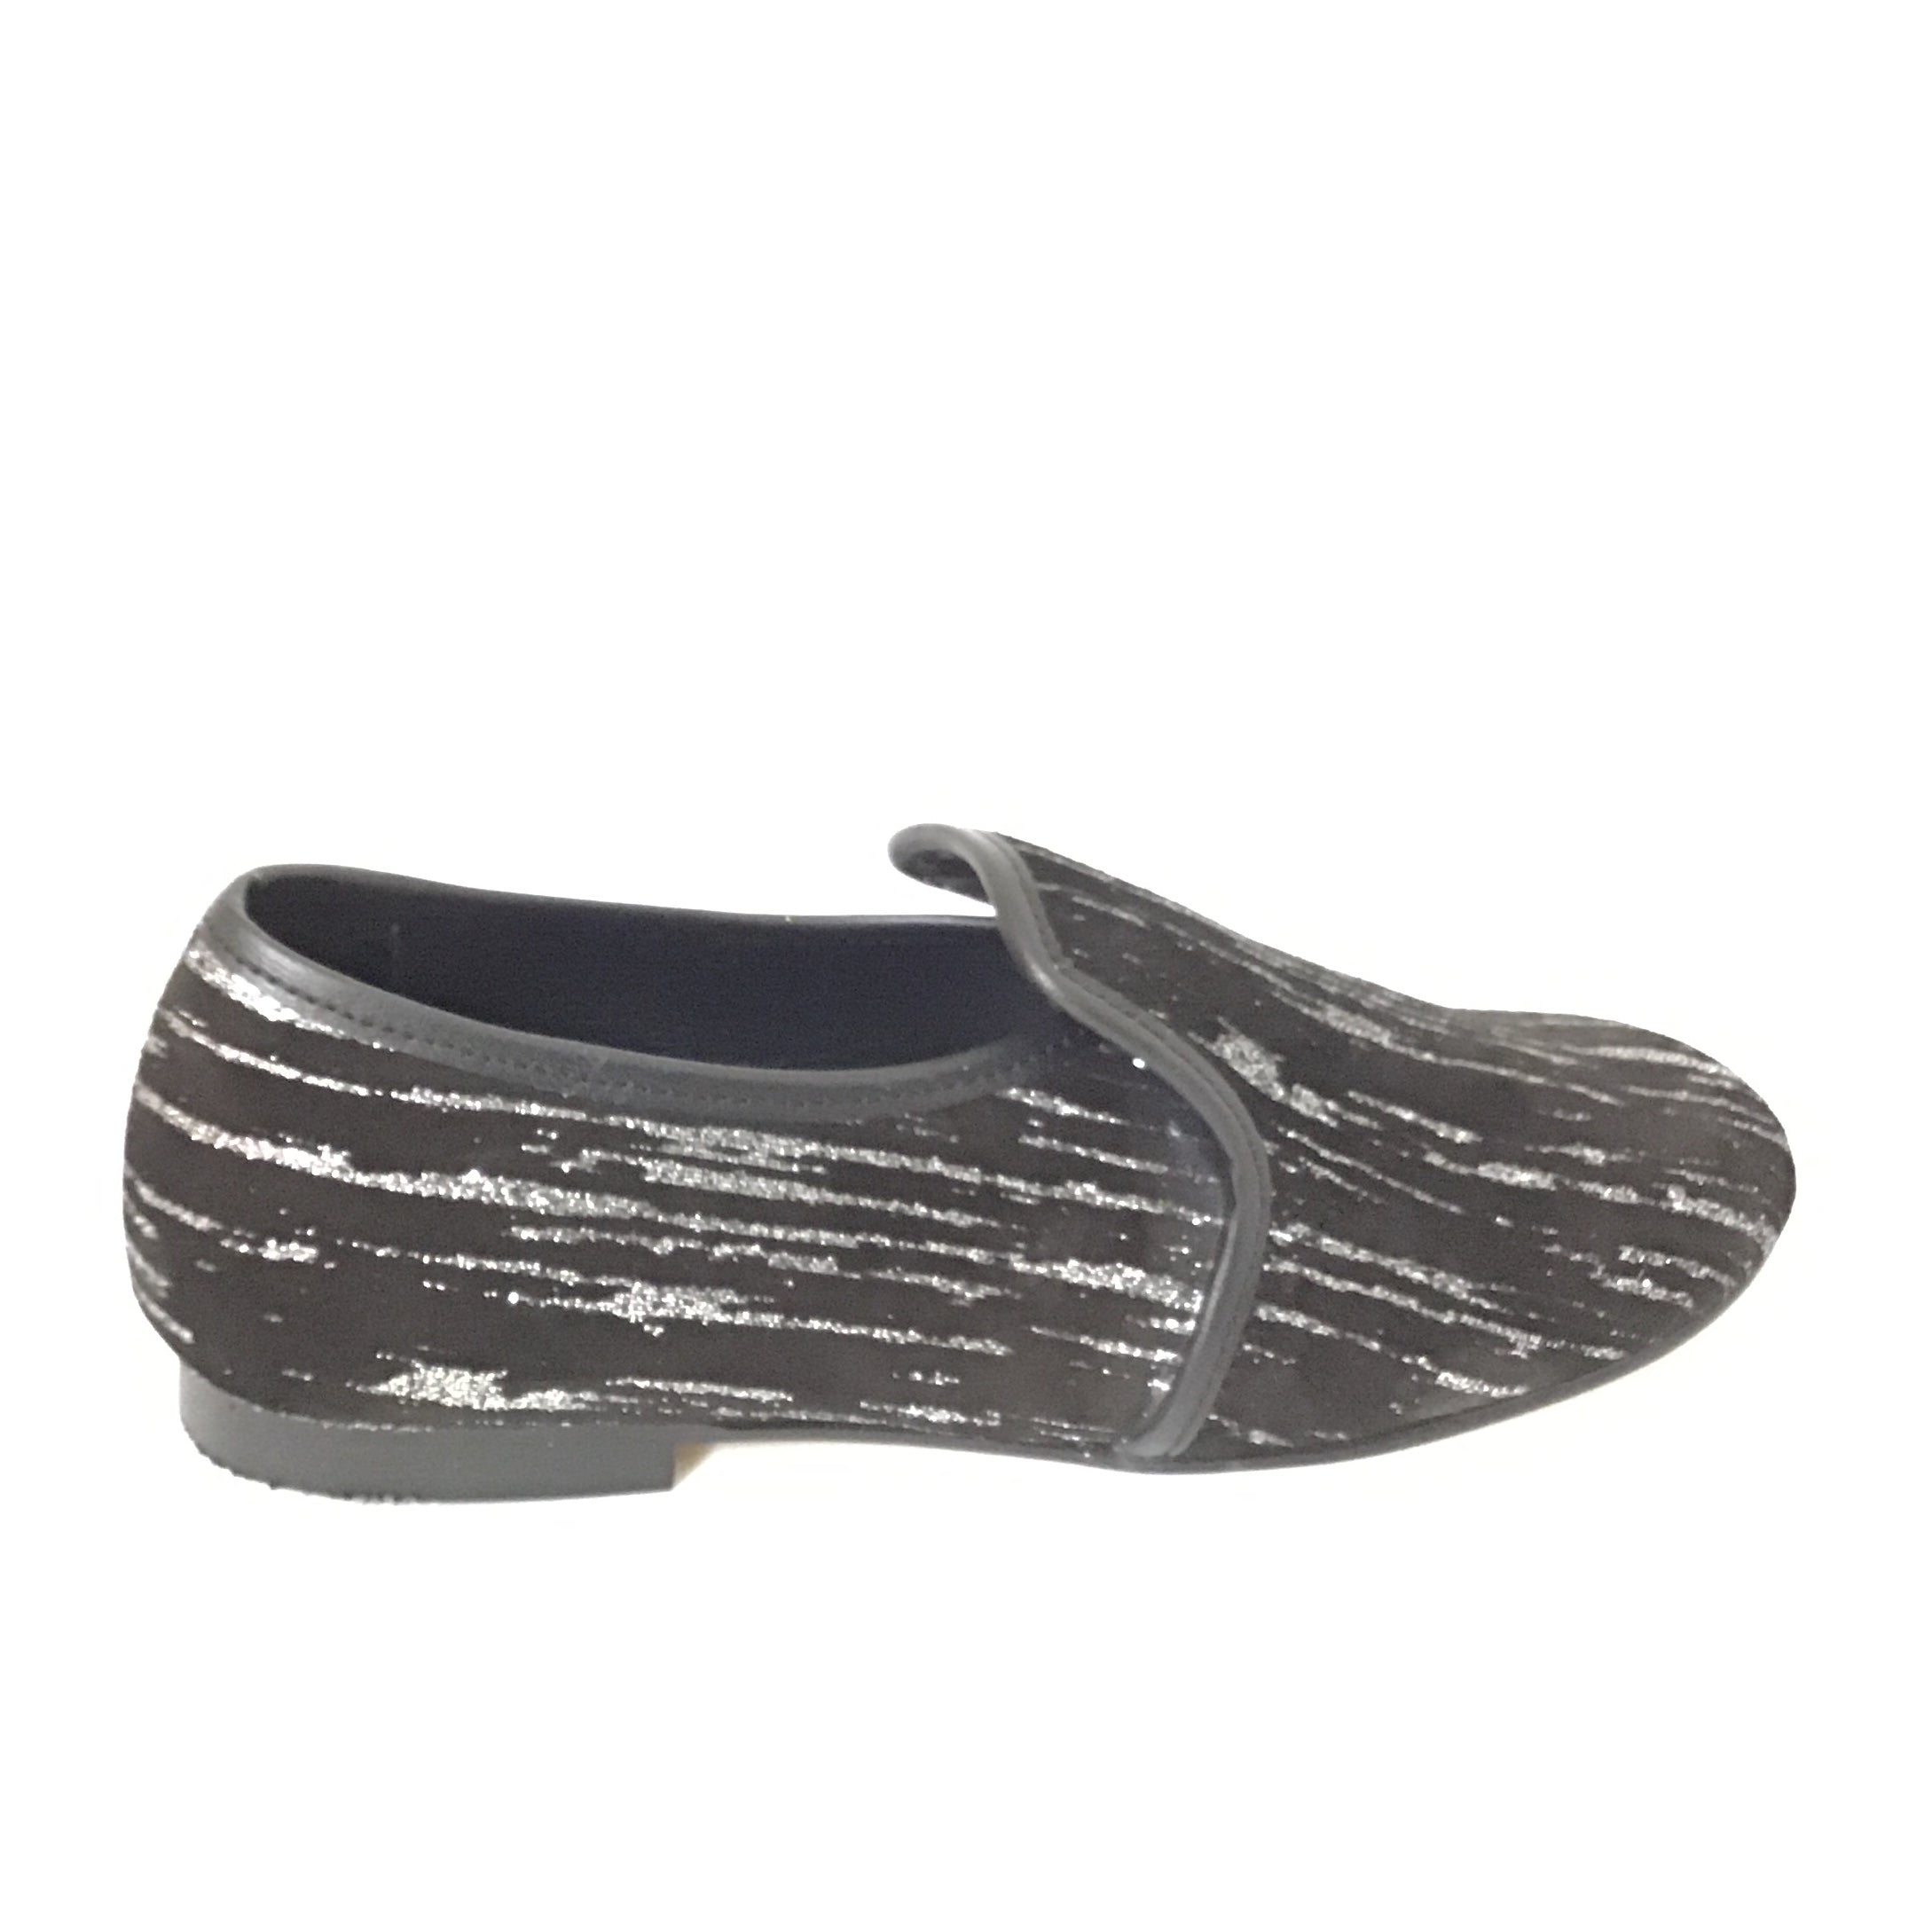 Luccini Black Suede Slip On with Silver Streaks